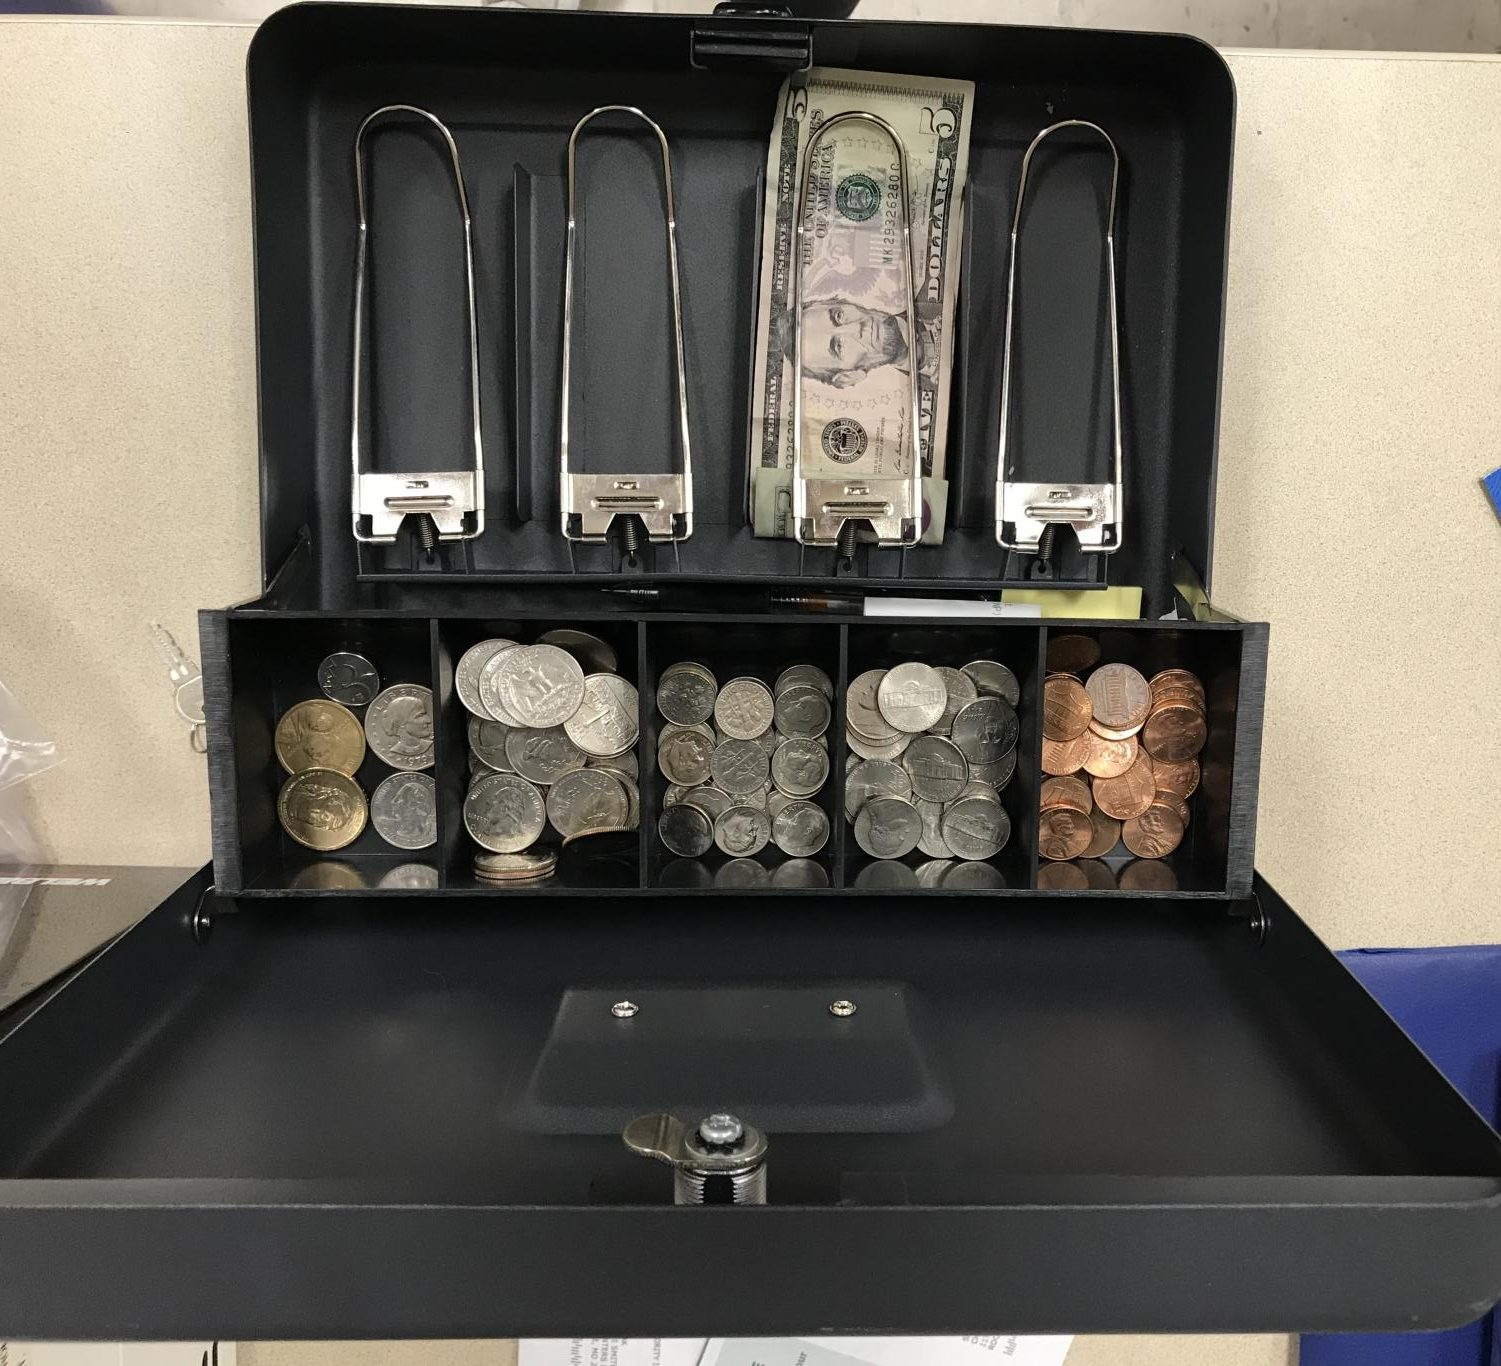 A grade government lockbox displays the class's funds collected from the fundraiser. This money can be spent on class activities and prom.